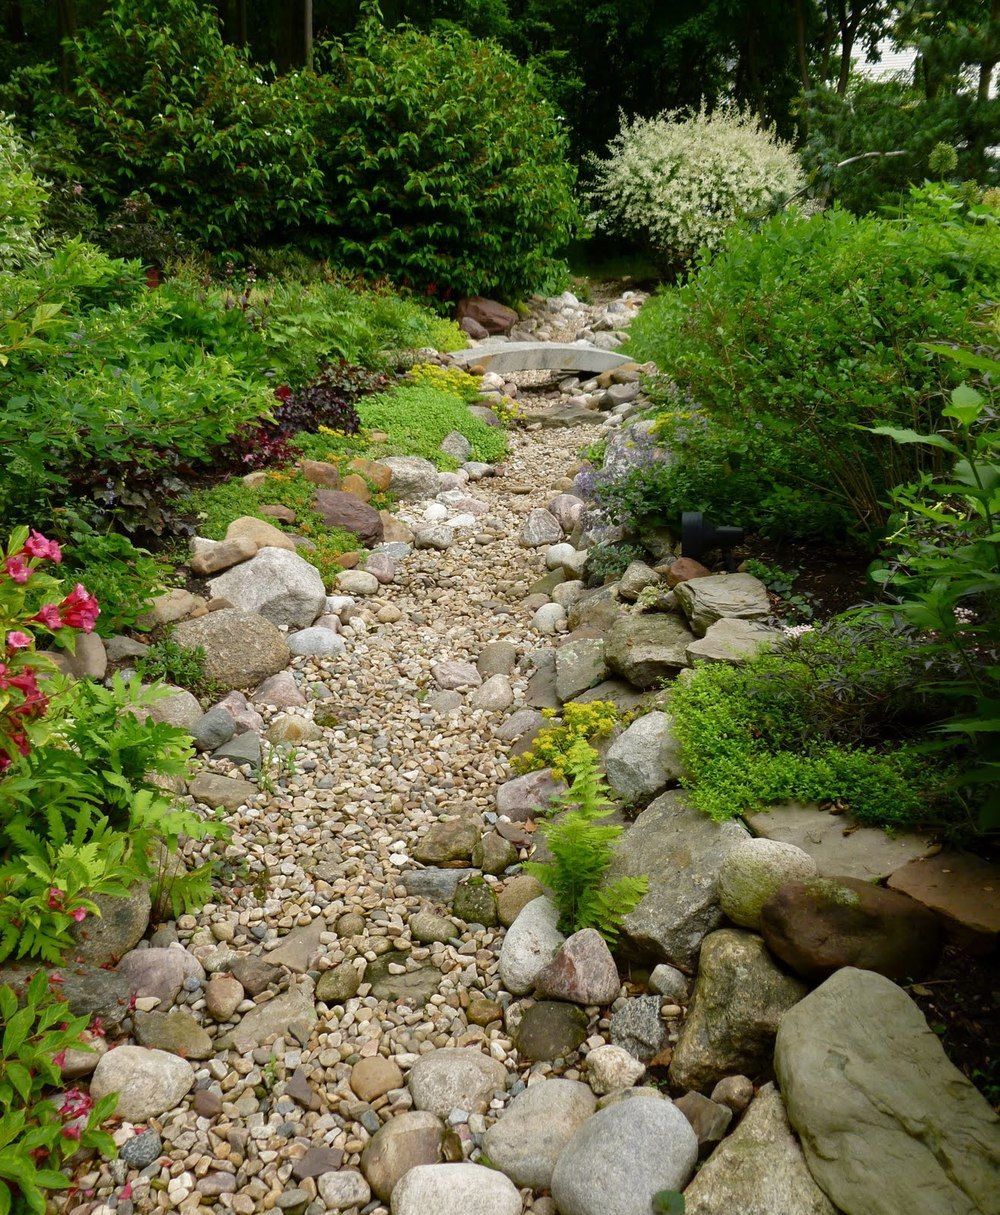 25 Gorgeous Dry Creek Bed Design Ideas | Dry creek bed, Gardens and ...